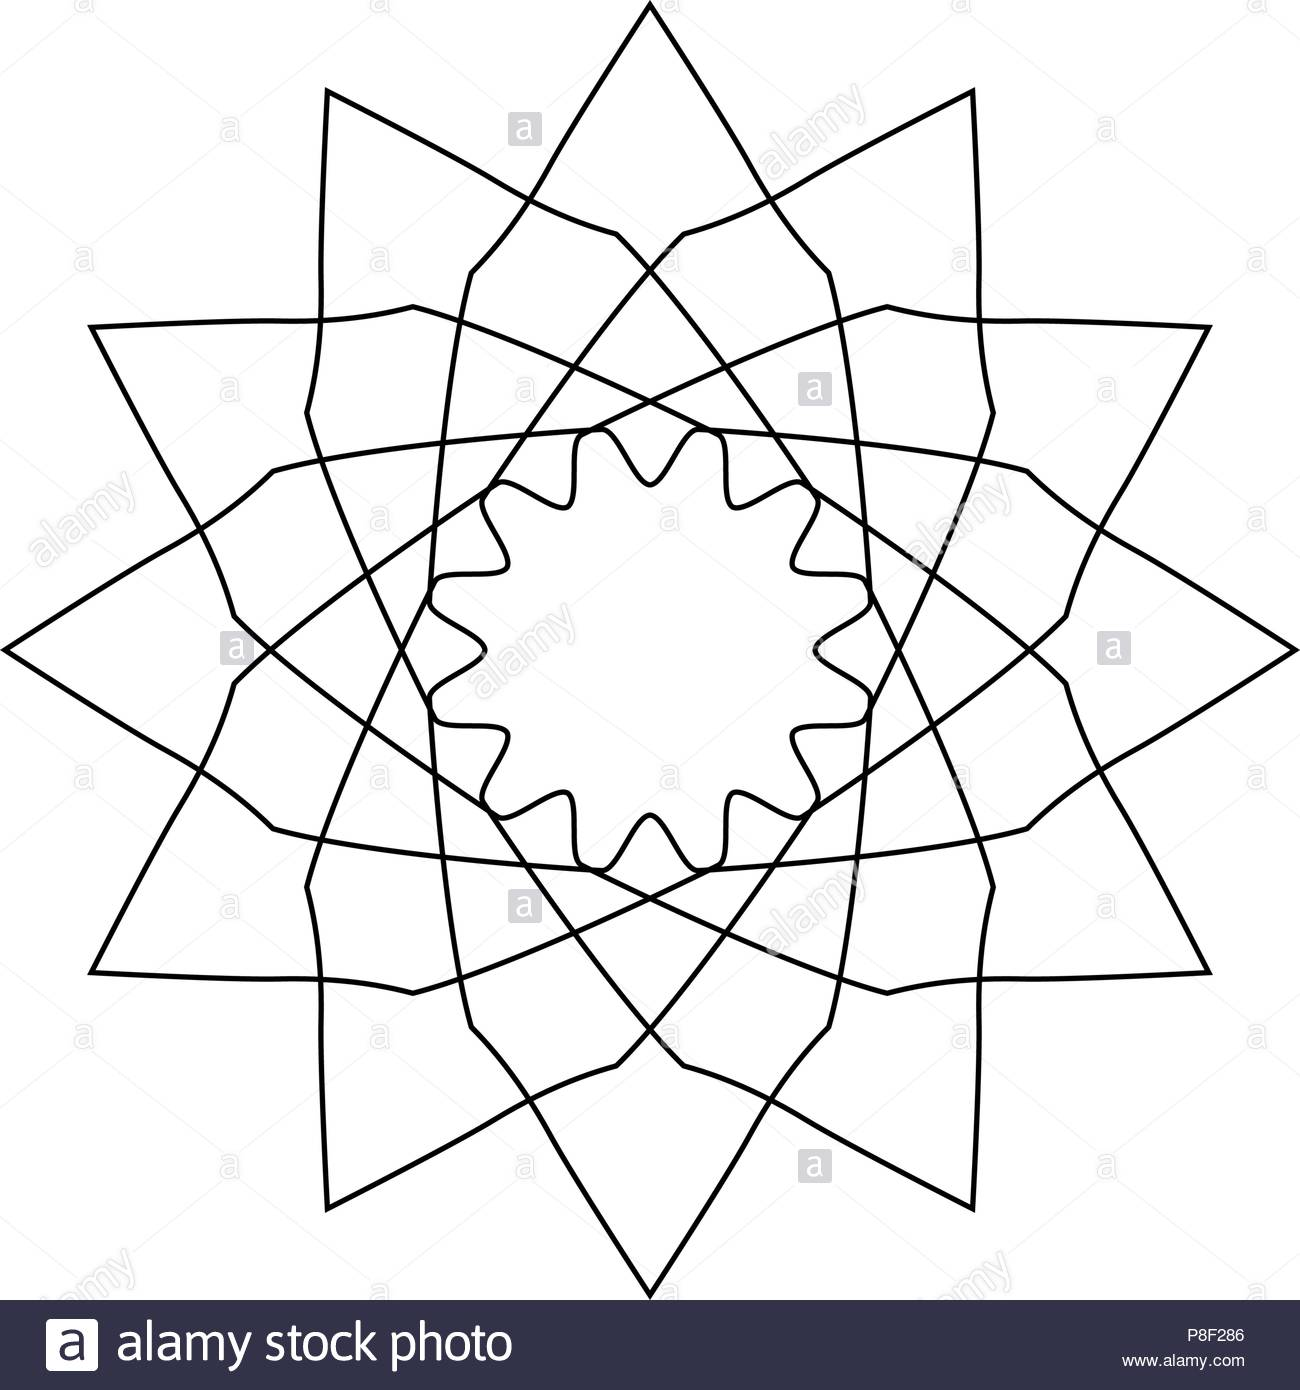 Geometric logo or symbol for decoration, vector illustration Stock Vector